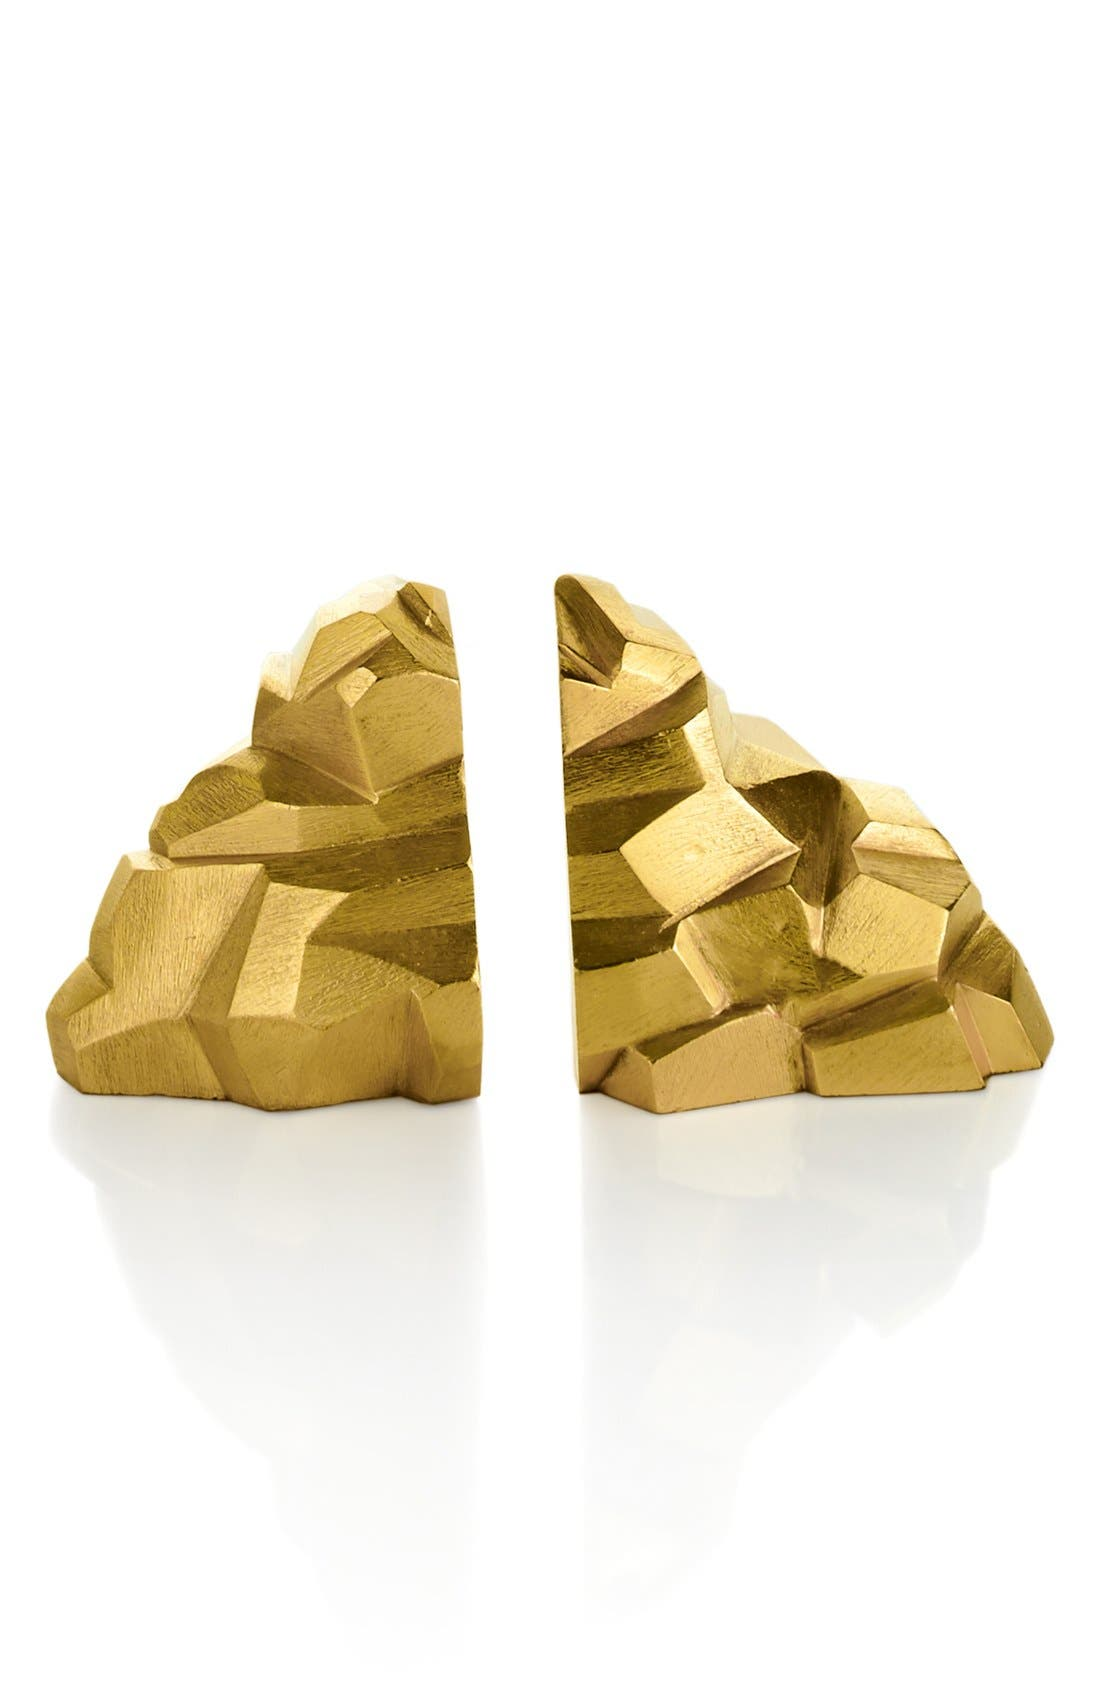 'Rock' Bookends,                         Main,                         color, 710